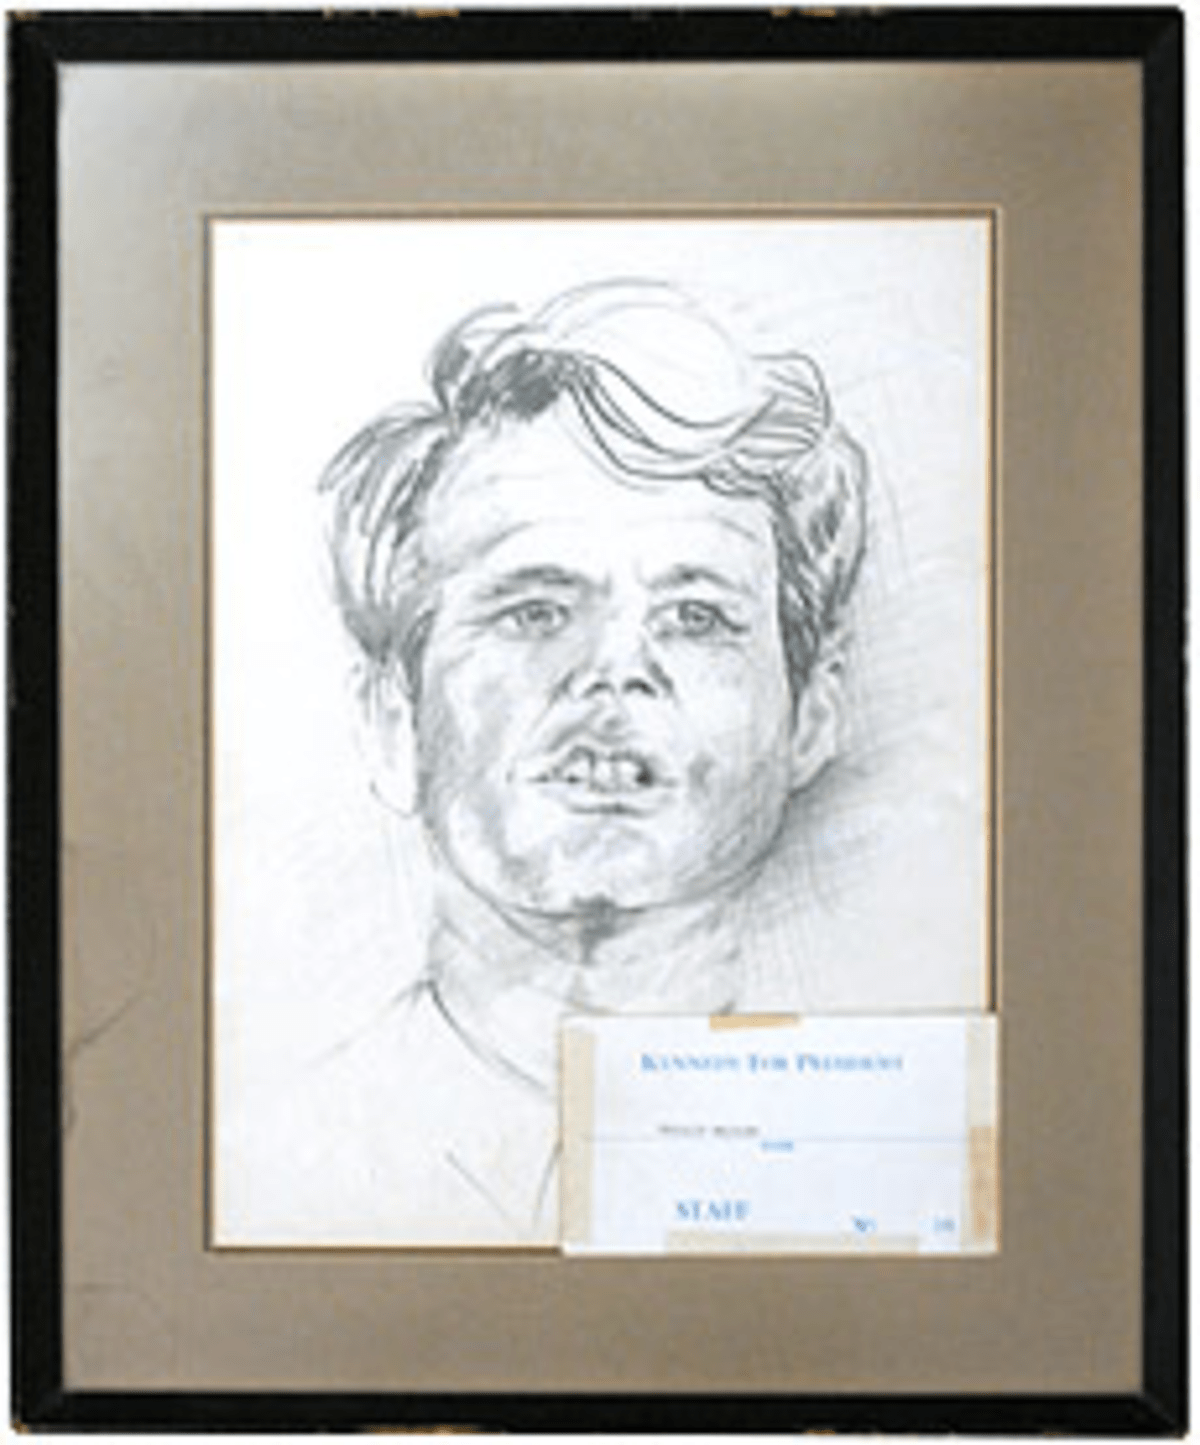 Phillip Bailley has had this RFK portrait for nearly 40 years. Now he wants to own it.